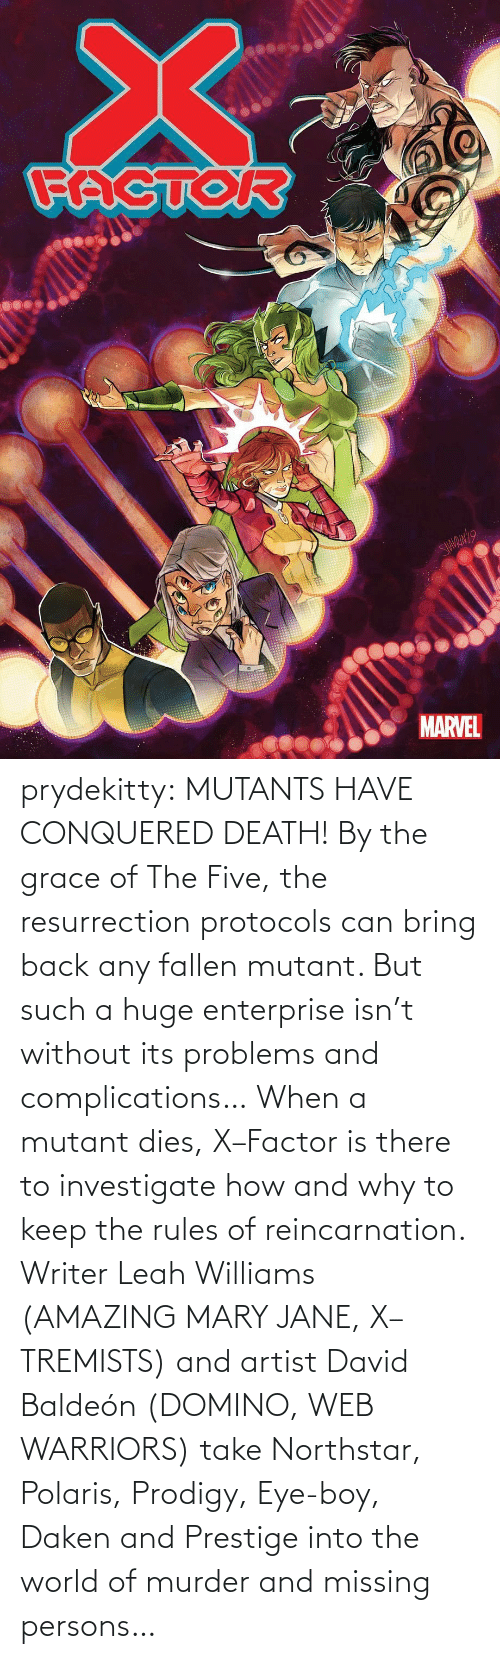 David: prydekitty:  MUTANTS HAVE CONQUERED DEATH! By the grace of The Five, the resurrection protocols can bring back any fallen mutant. But such a huge enterprise isn't without its problems and complications… When a mutant dies, X–Factor is there to investigate how and why to keep the rules of reincarnation. Writer Leah Williams (AMAZING MARY JANE, X–TREMISTS) and artist David Baldeón (DOMINO, WEB WARRIORS) take Northstar, Polaris, Prodigy, Eye-boy, Daken and Prestige into the world of murder and missing persons…